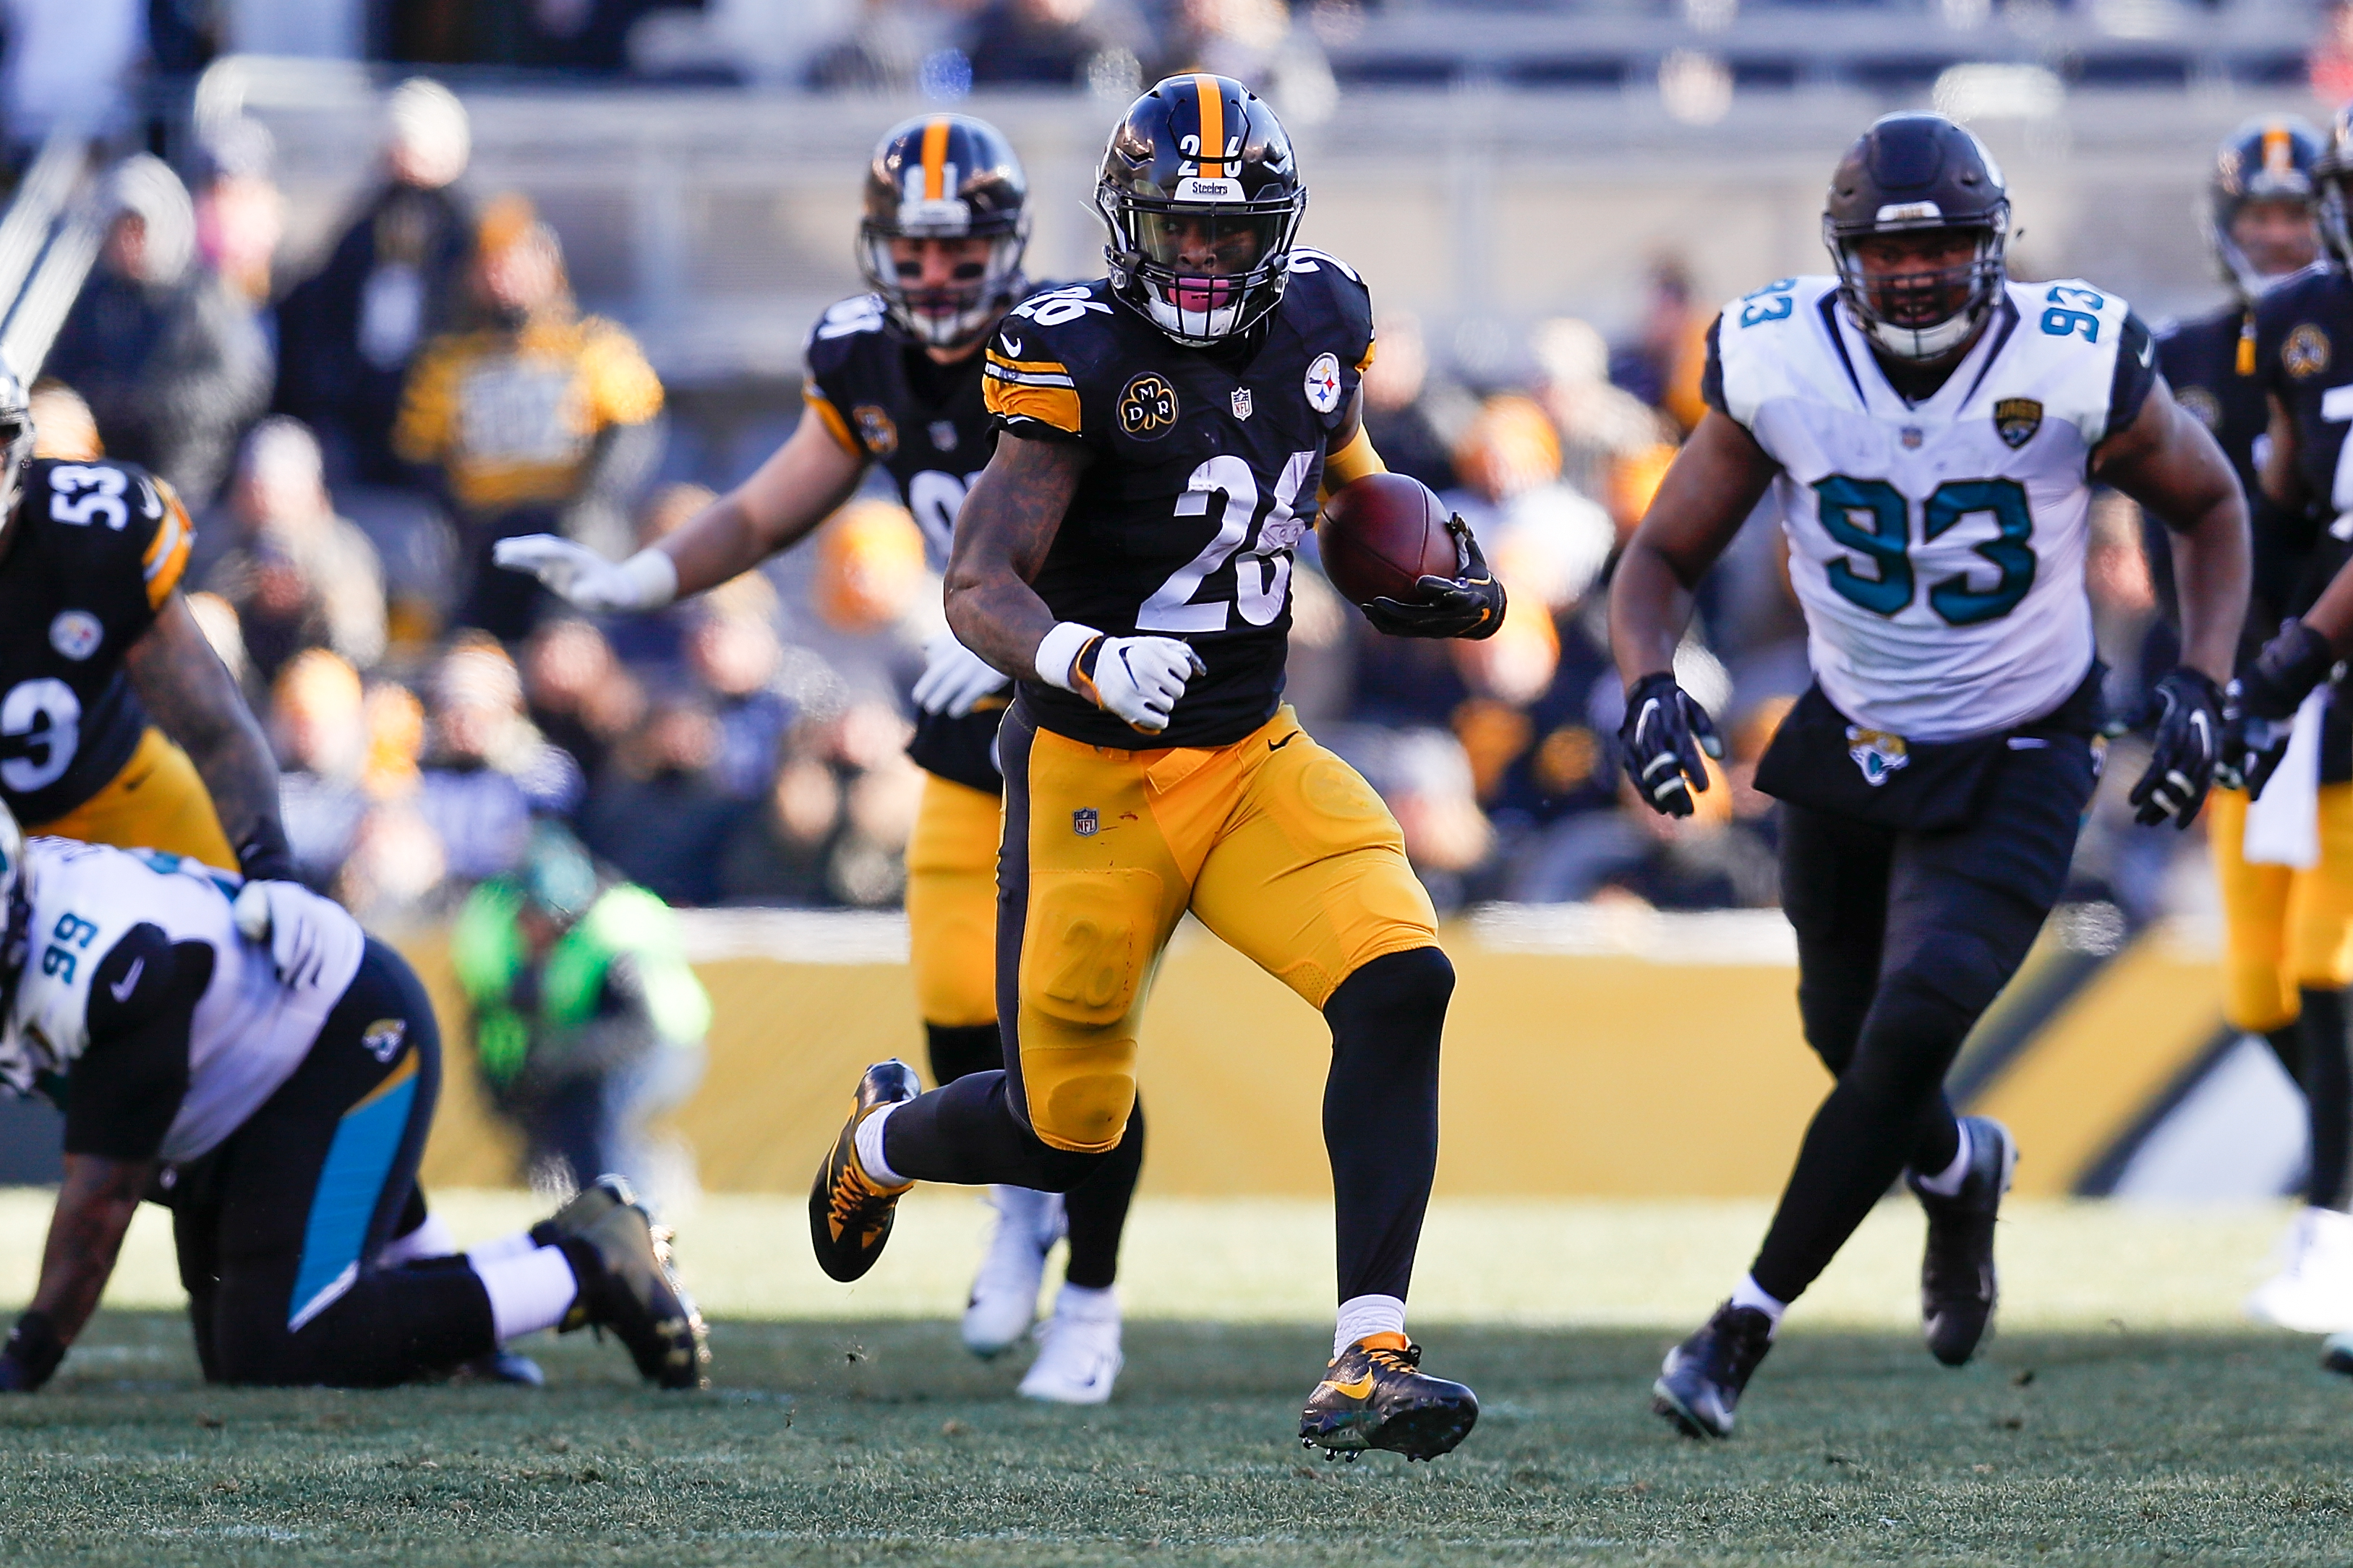 Salary cap implications for Steelers from new Roosevelt Nix contract